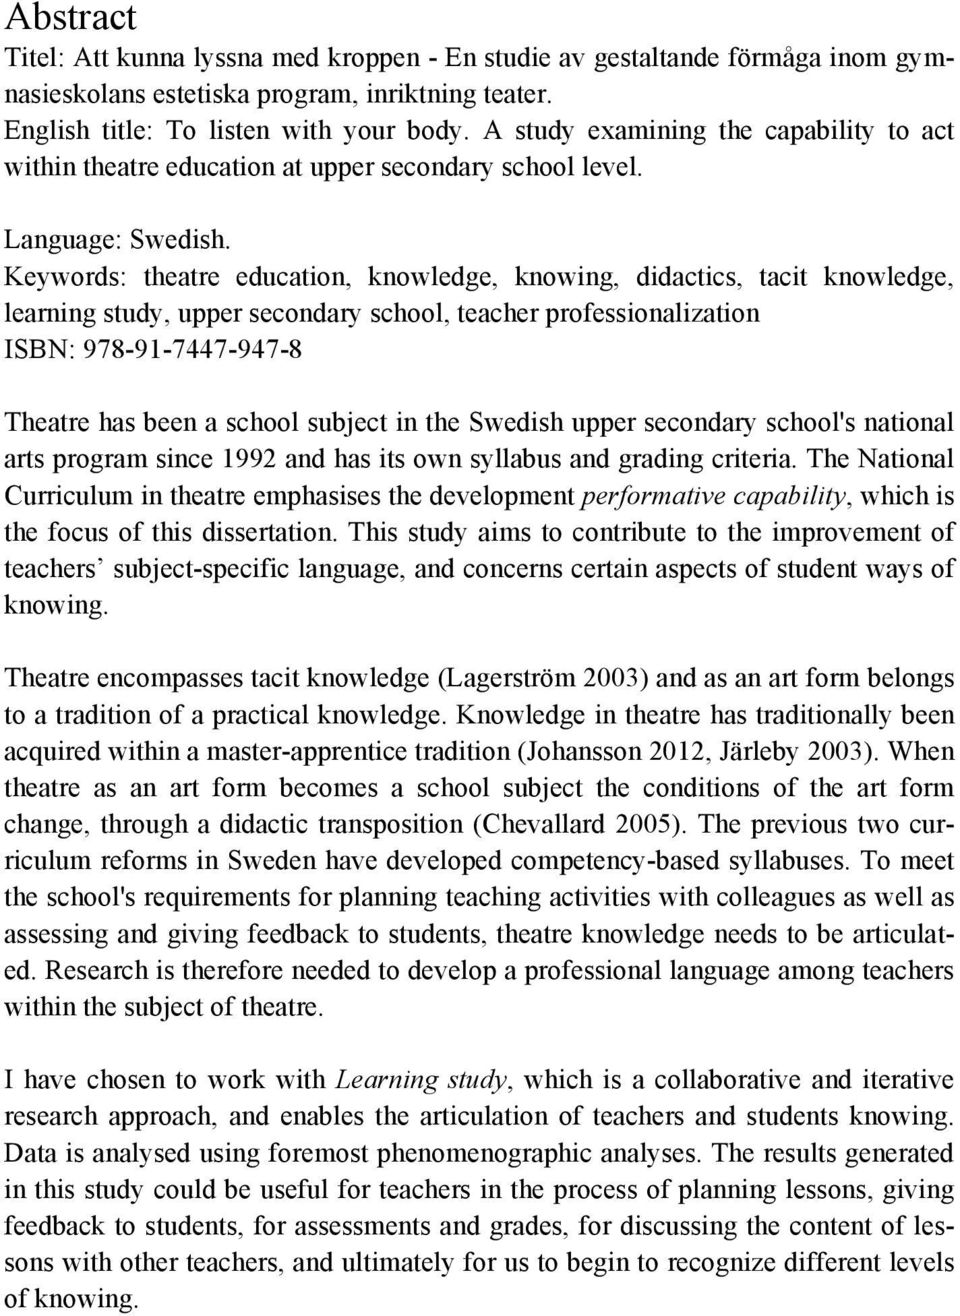 Keywords: theatre education, knowledge, knowing, didactics, tacit knowledge, learning study, upper secondary school, teacher professionalization ISBN: 978-91-7447-947-8 Theatre has been a school